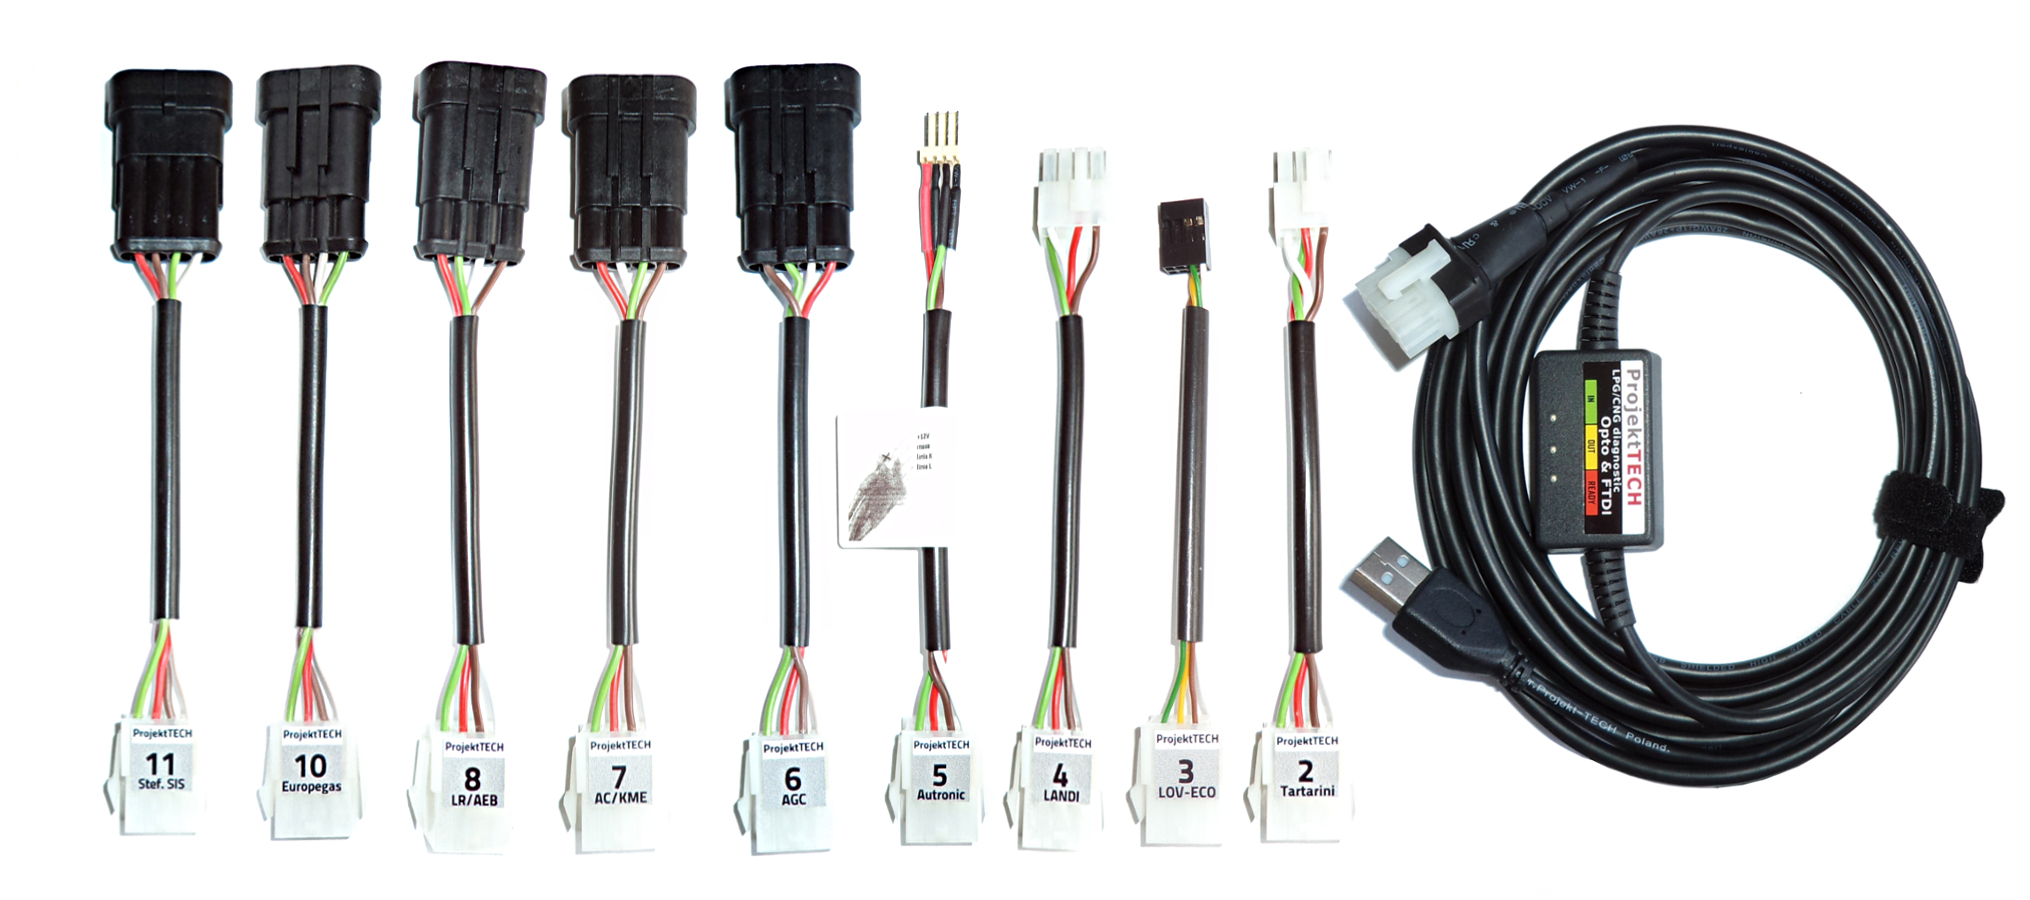 SOFTWARE INTERFACE 5 CONNECTORS LPG CNG USB Interface Kit professional 4 m